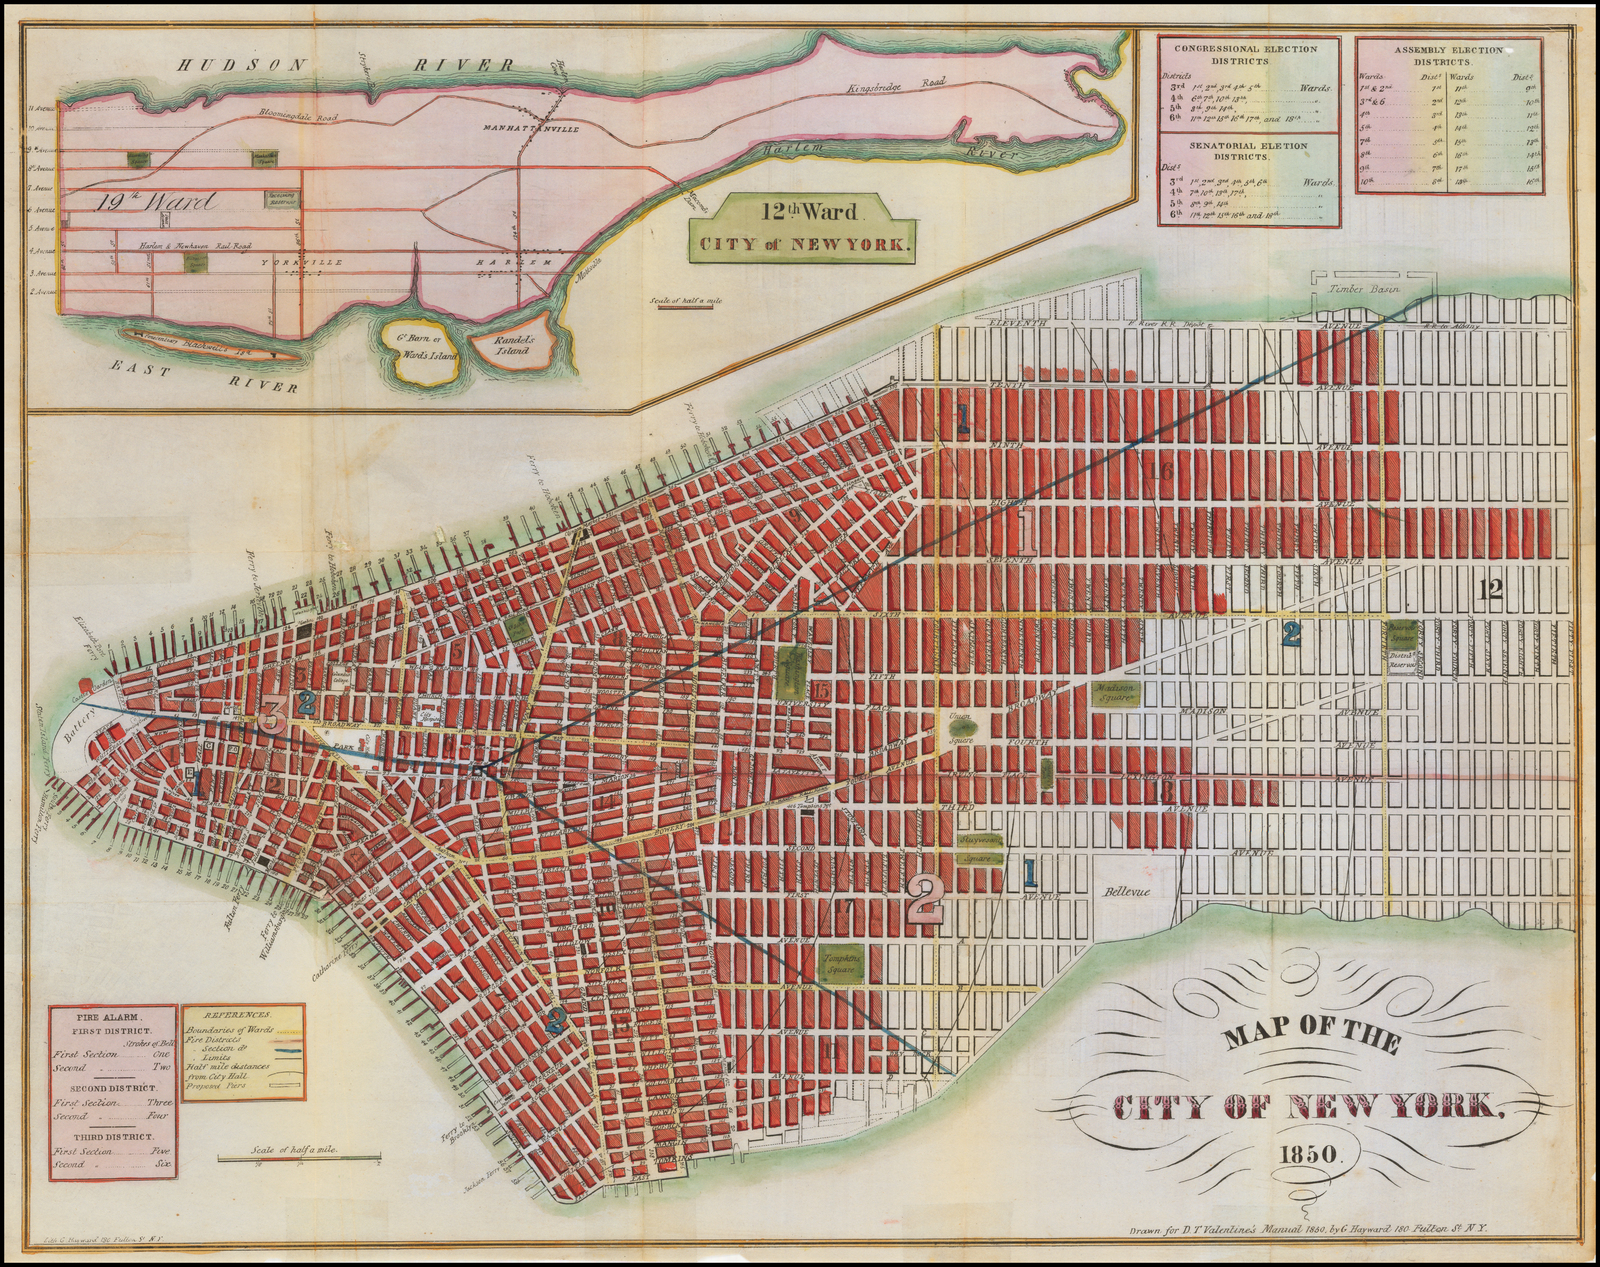 Map Of New York 1850.Map Of The City Of New York 1850 Barry Lawrence Ruderman Antique